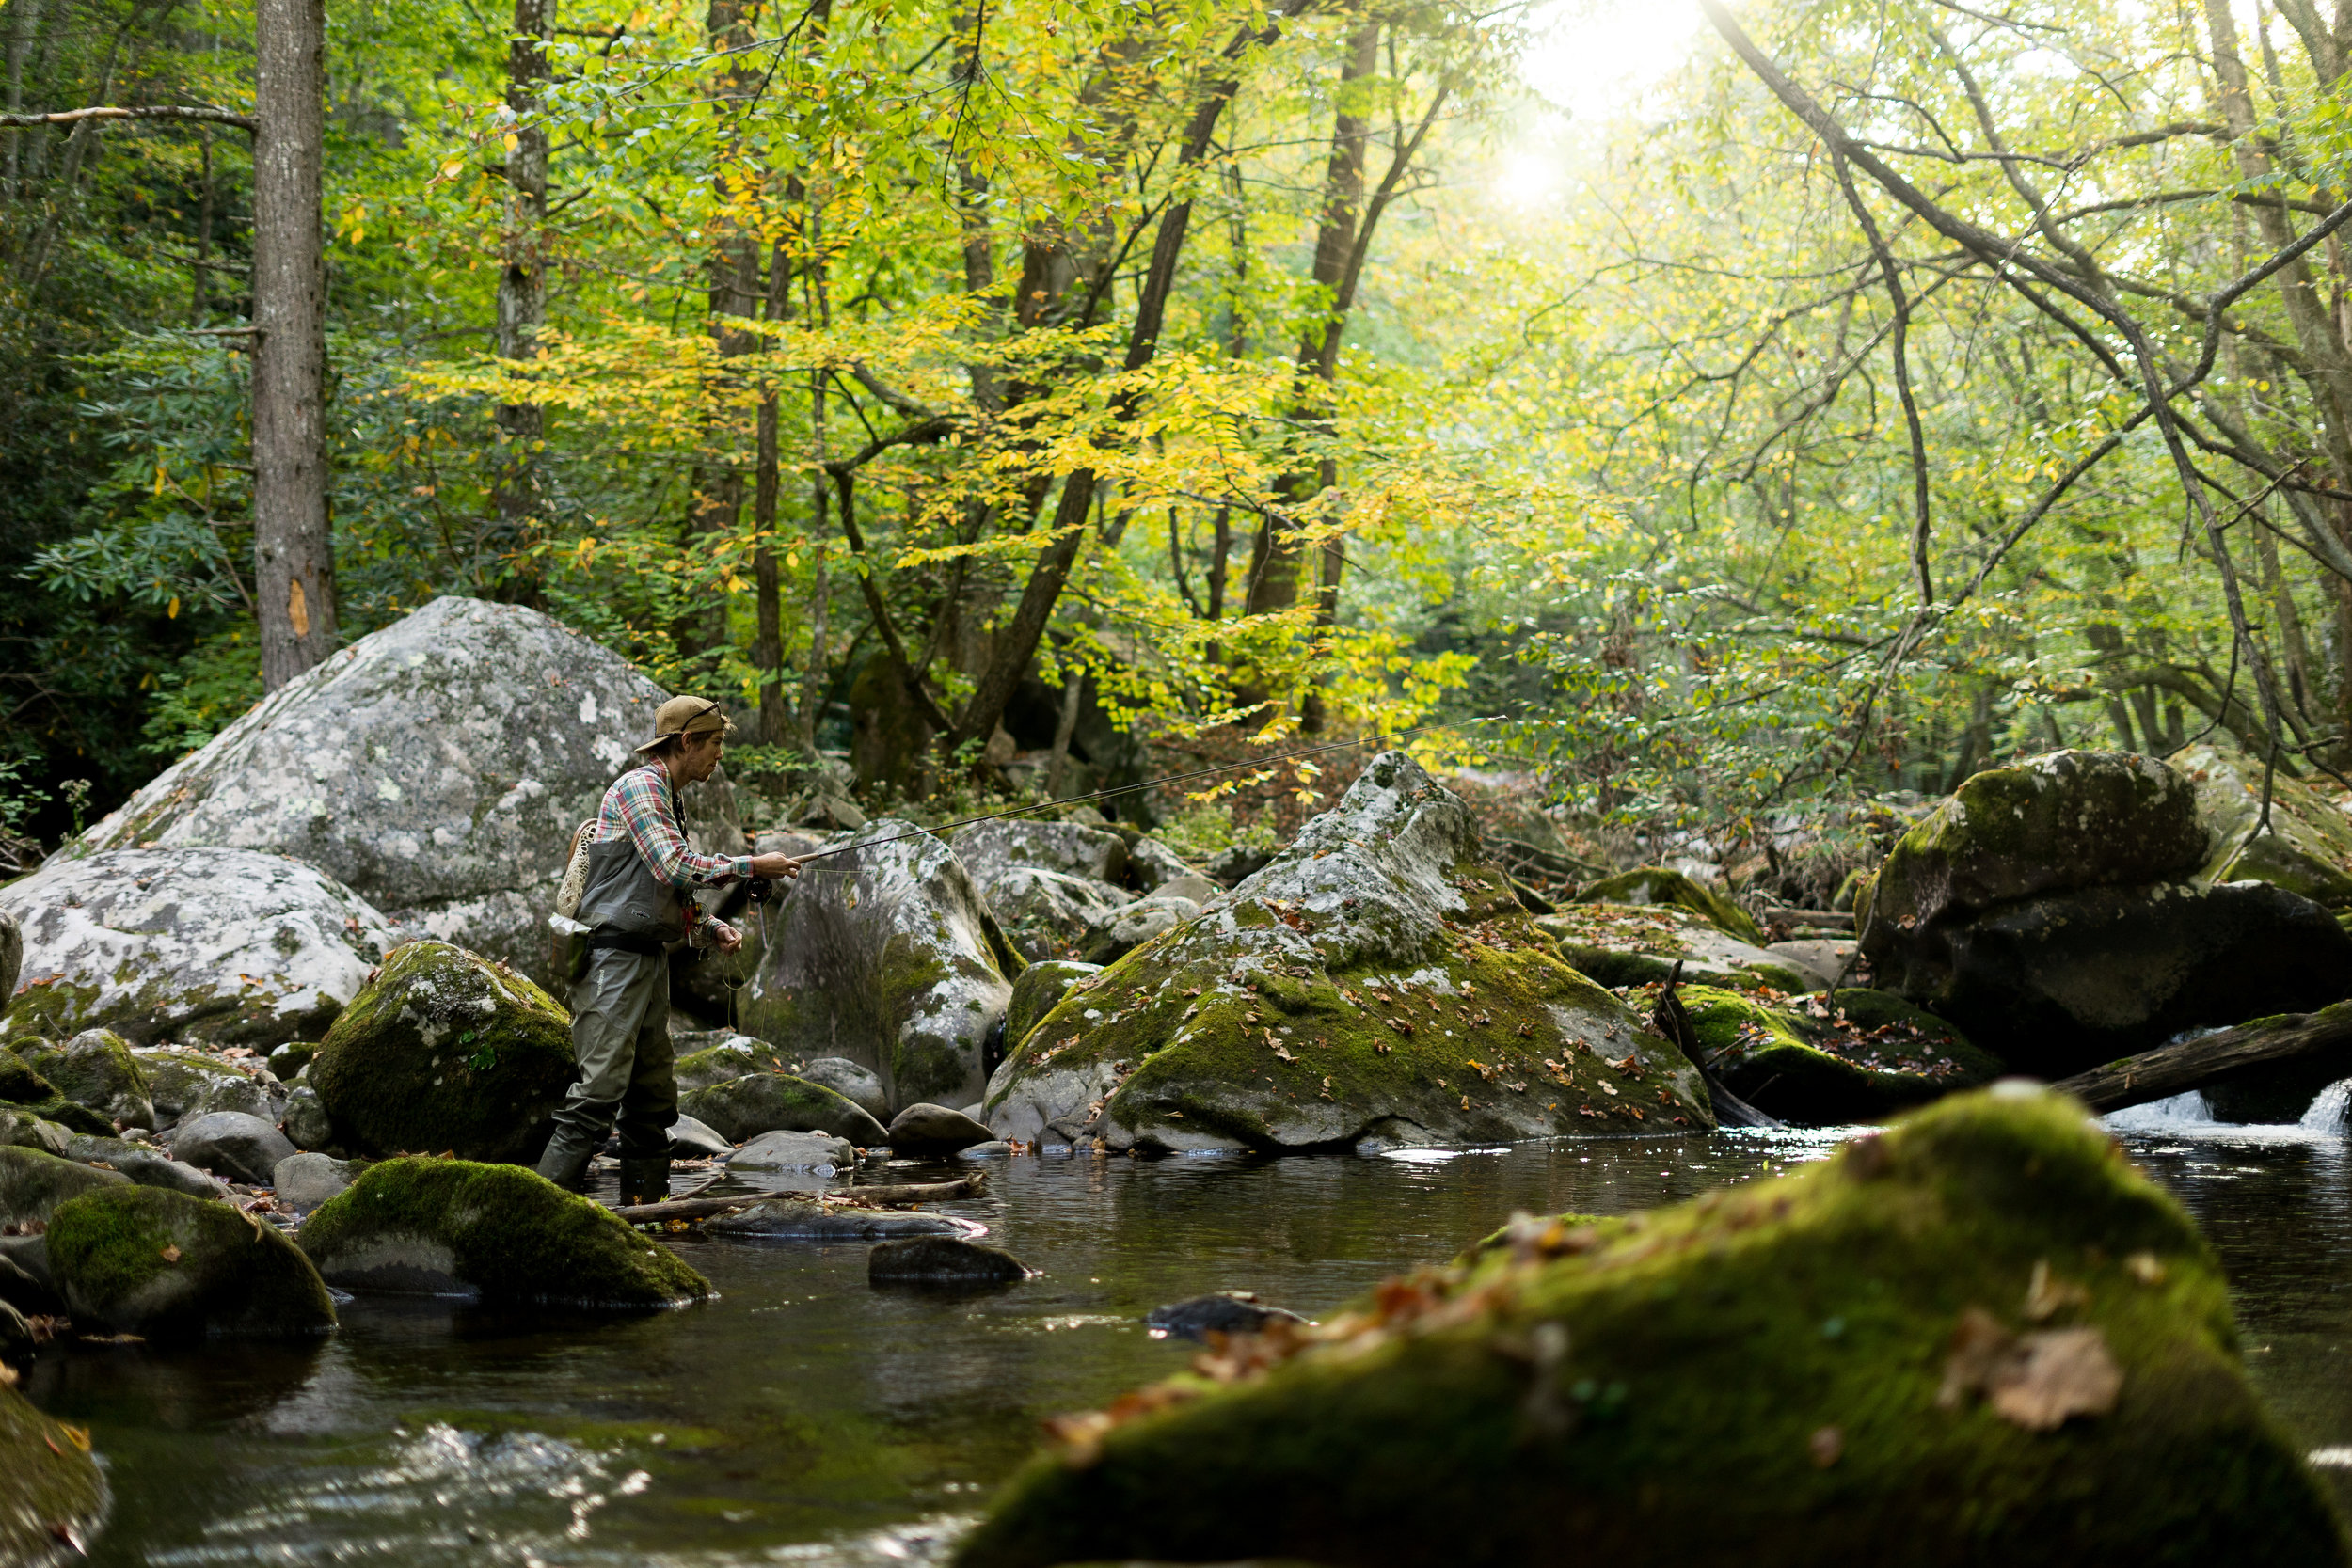 TJ Maurer fishing the Little River in the Great Smokey Mountain National Park